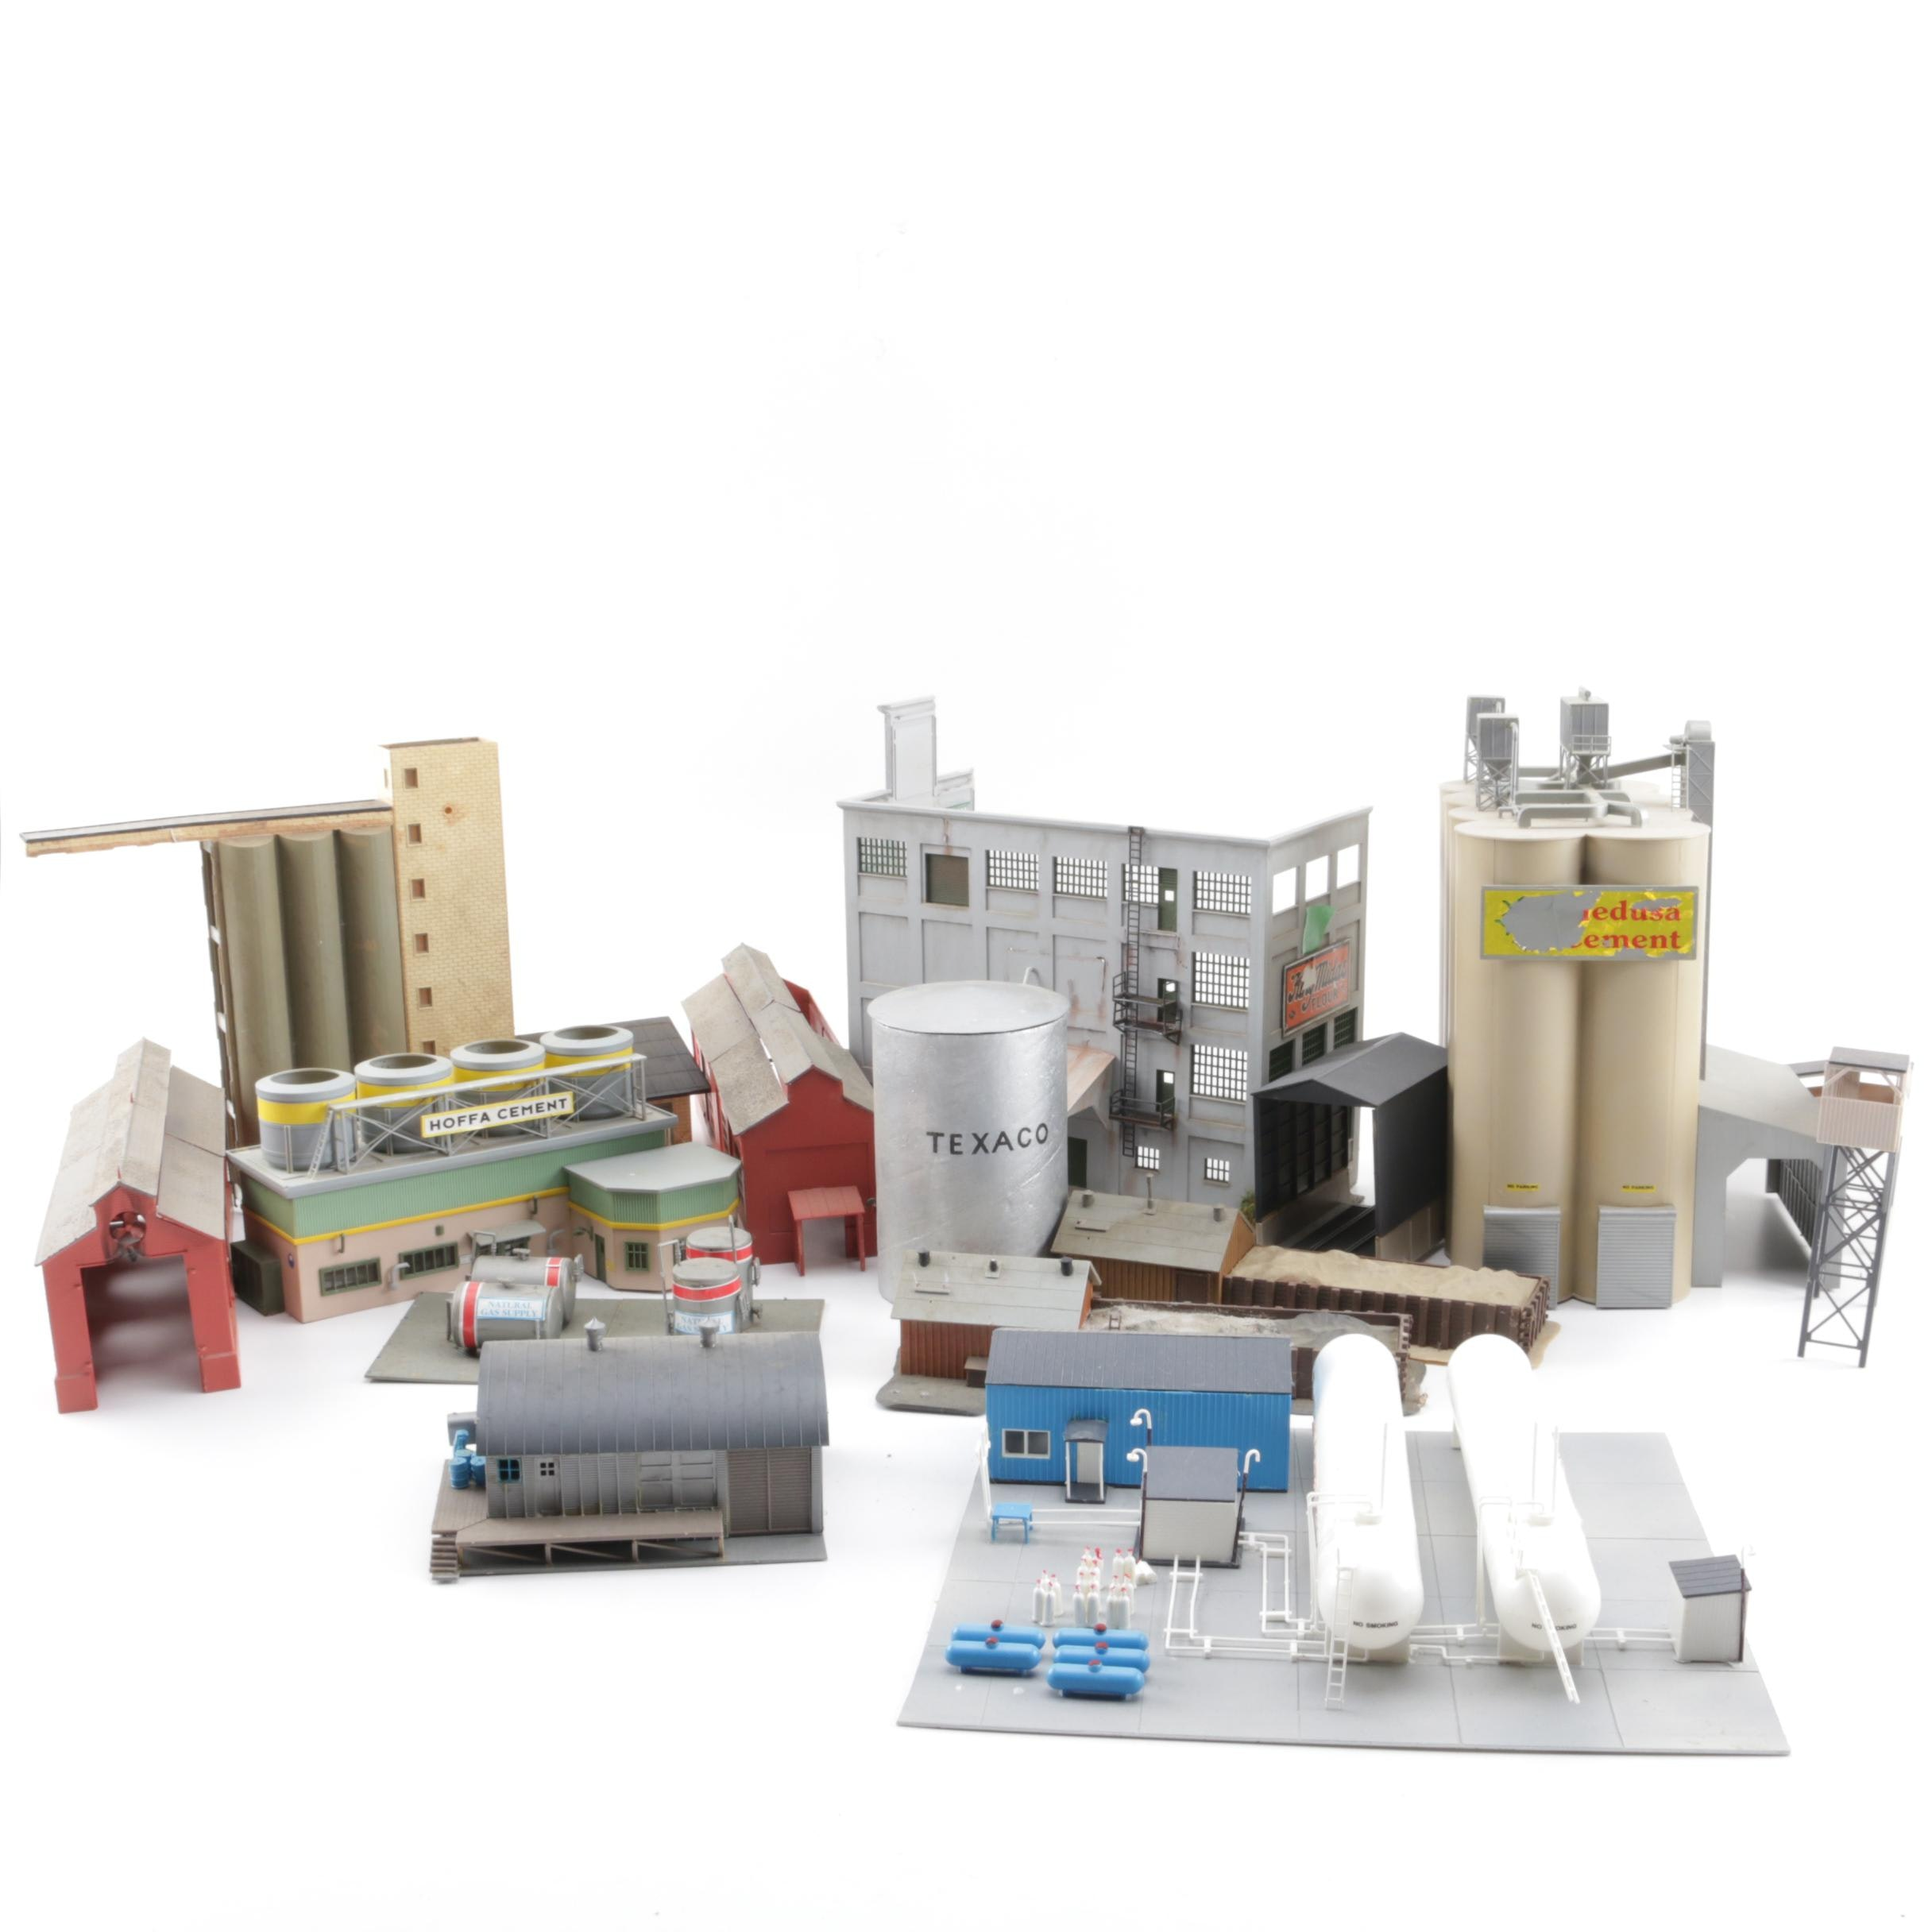 Collection of Industrial Buildings for Model Railroads